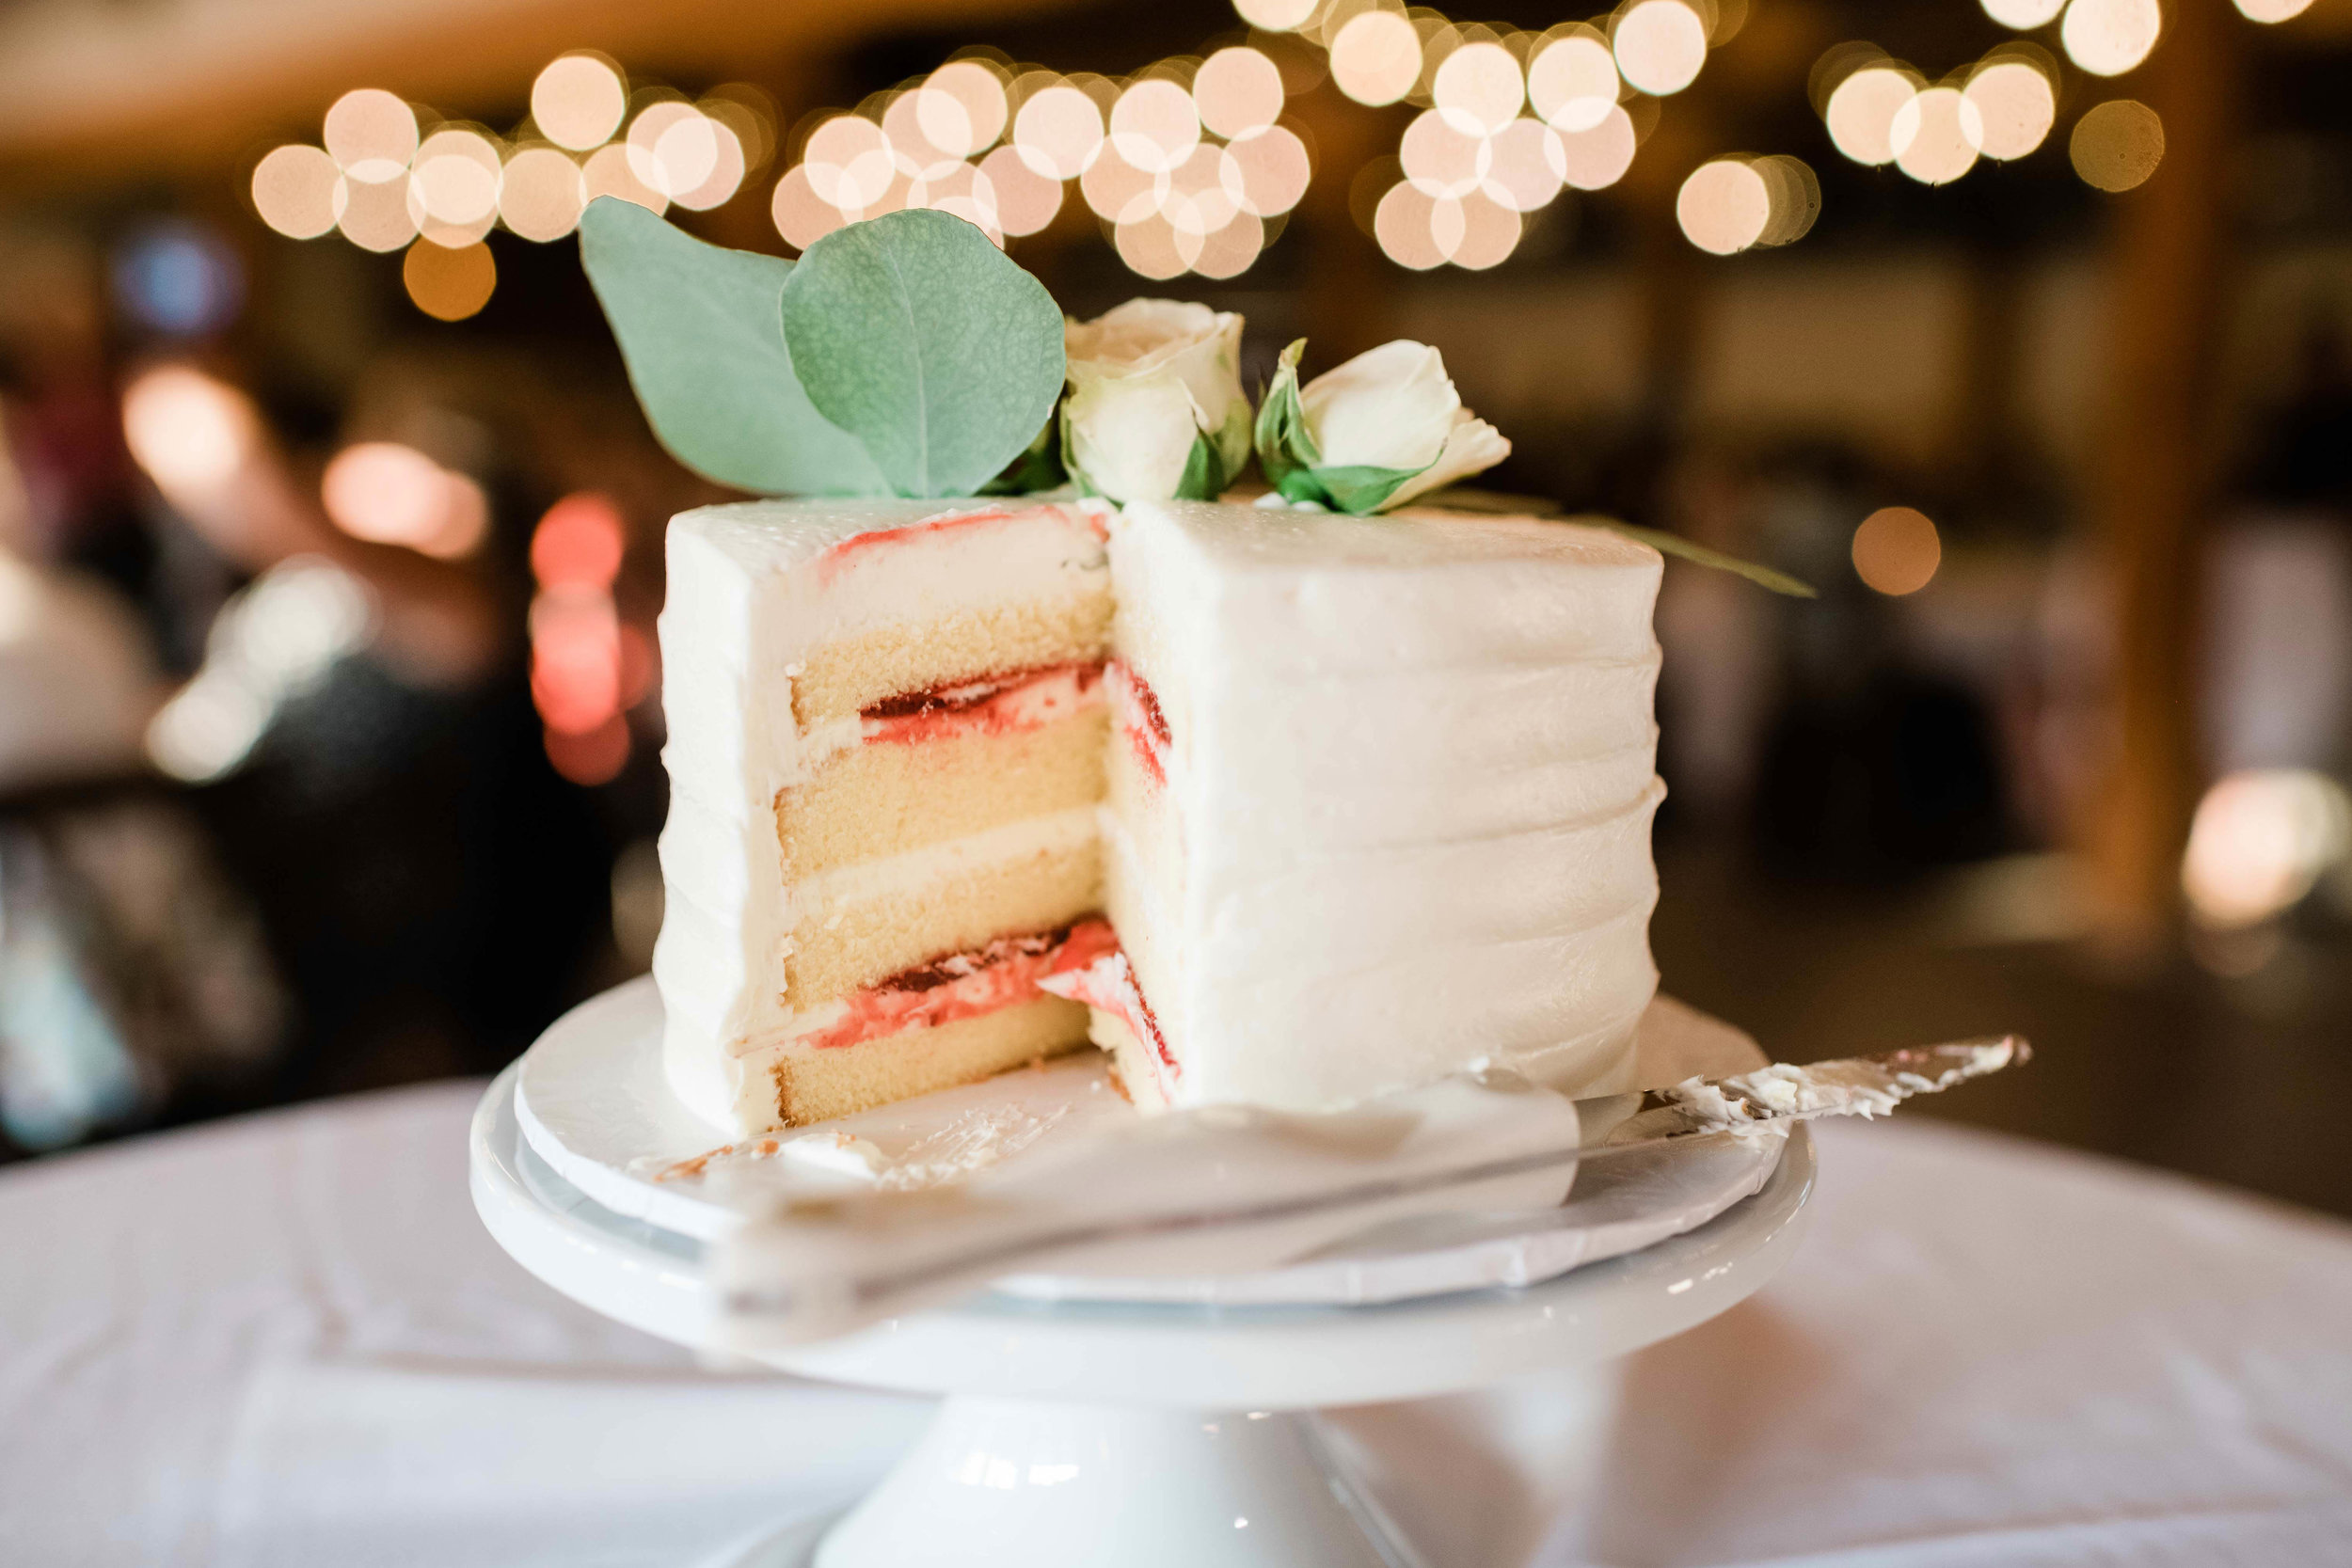 Jelly filled wedding cake